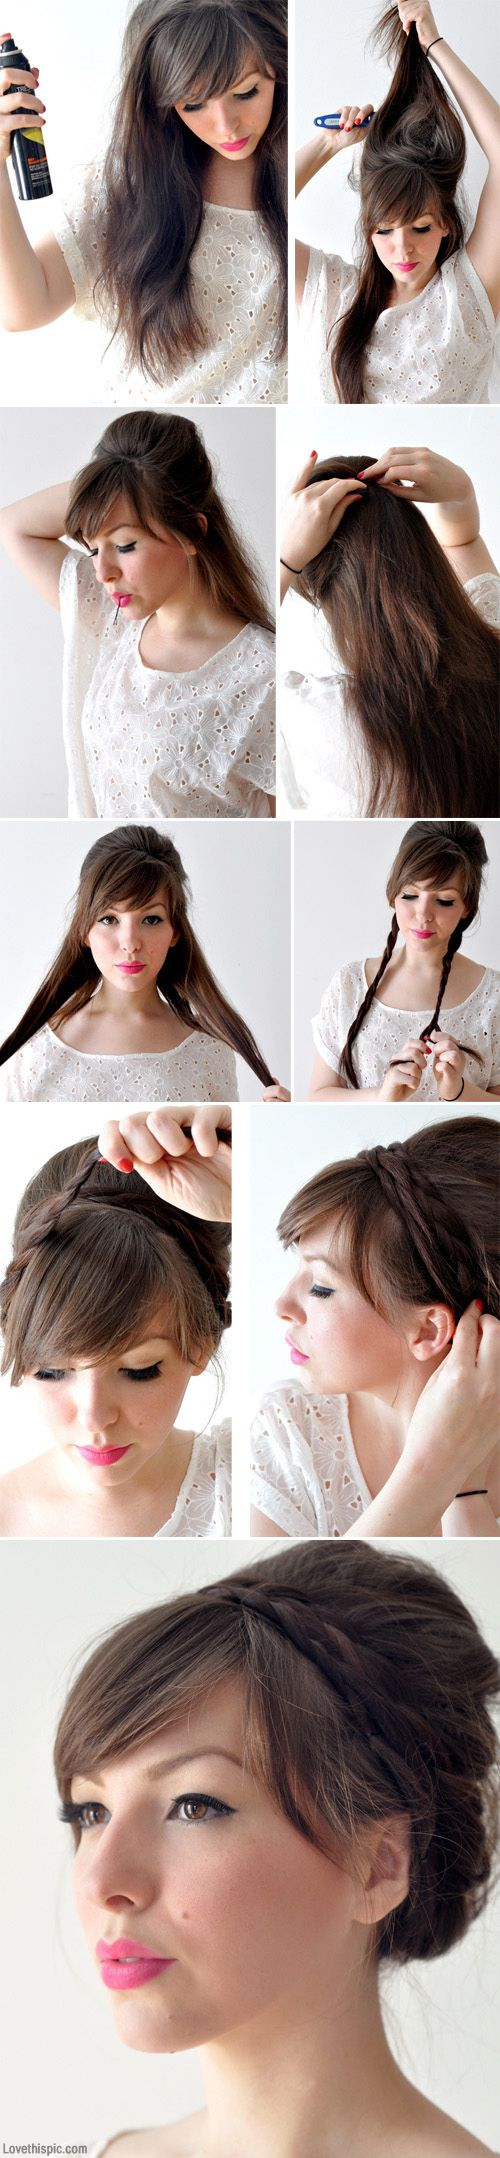 best images about hair style on pinterest french braids side